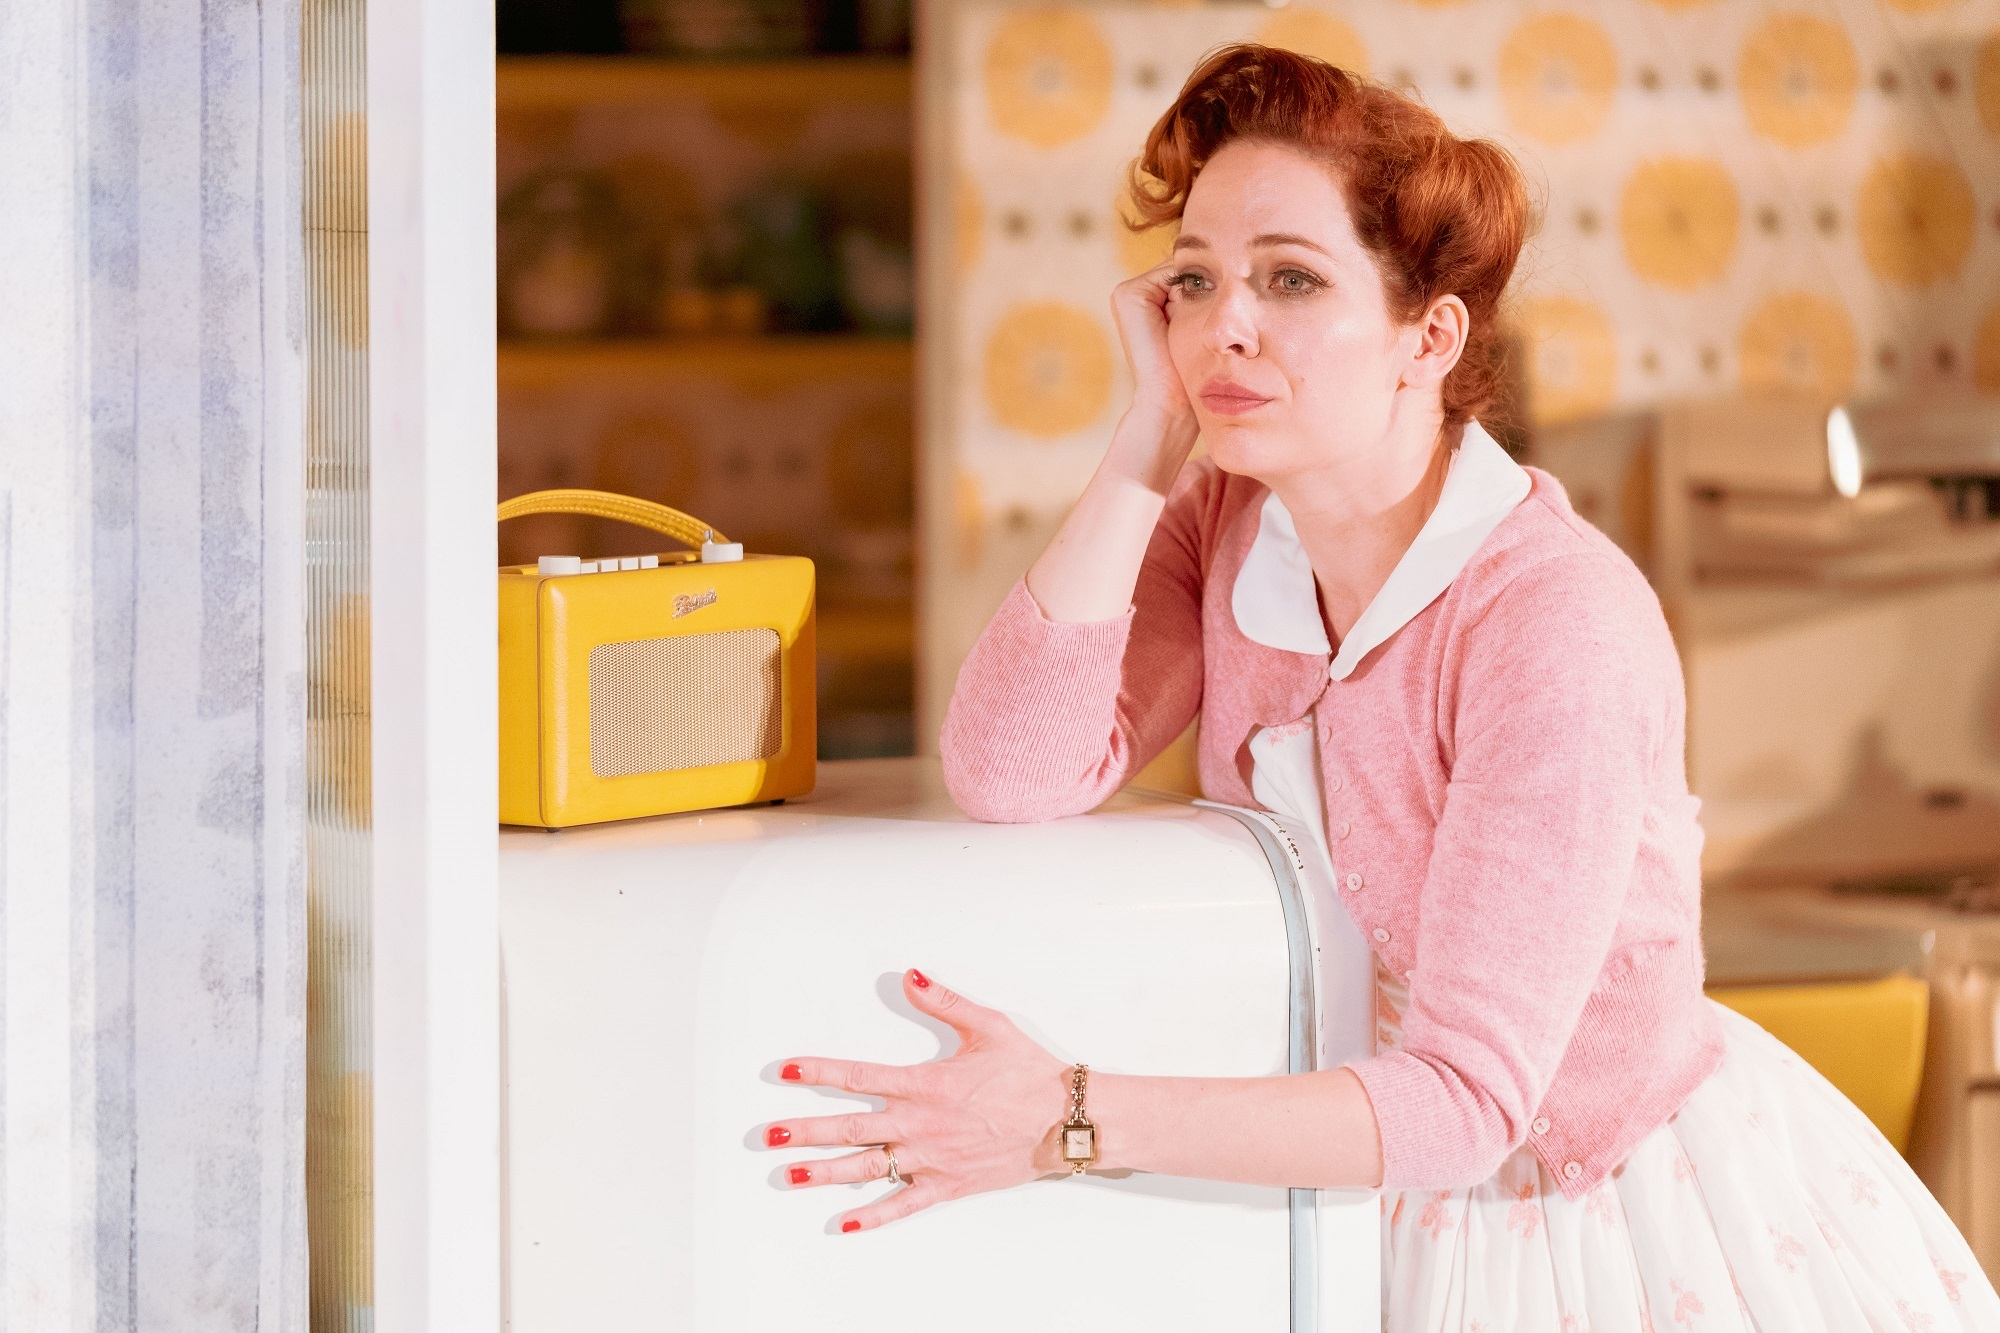 Katherine Parkinson in Home I'm Darling